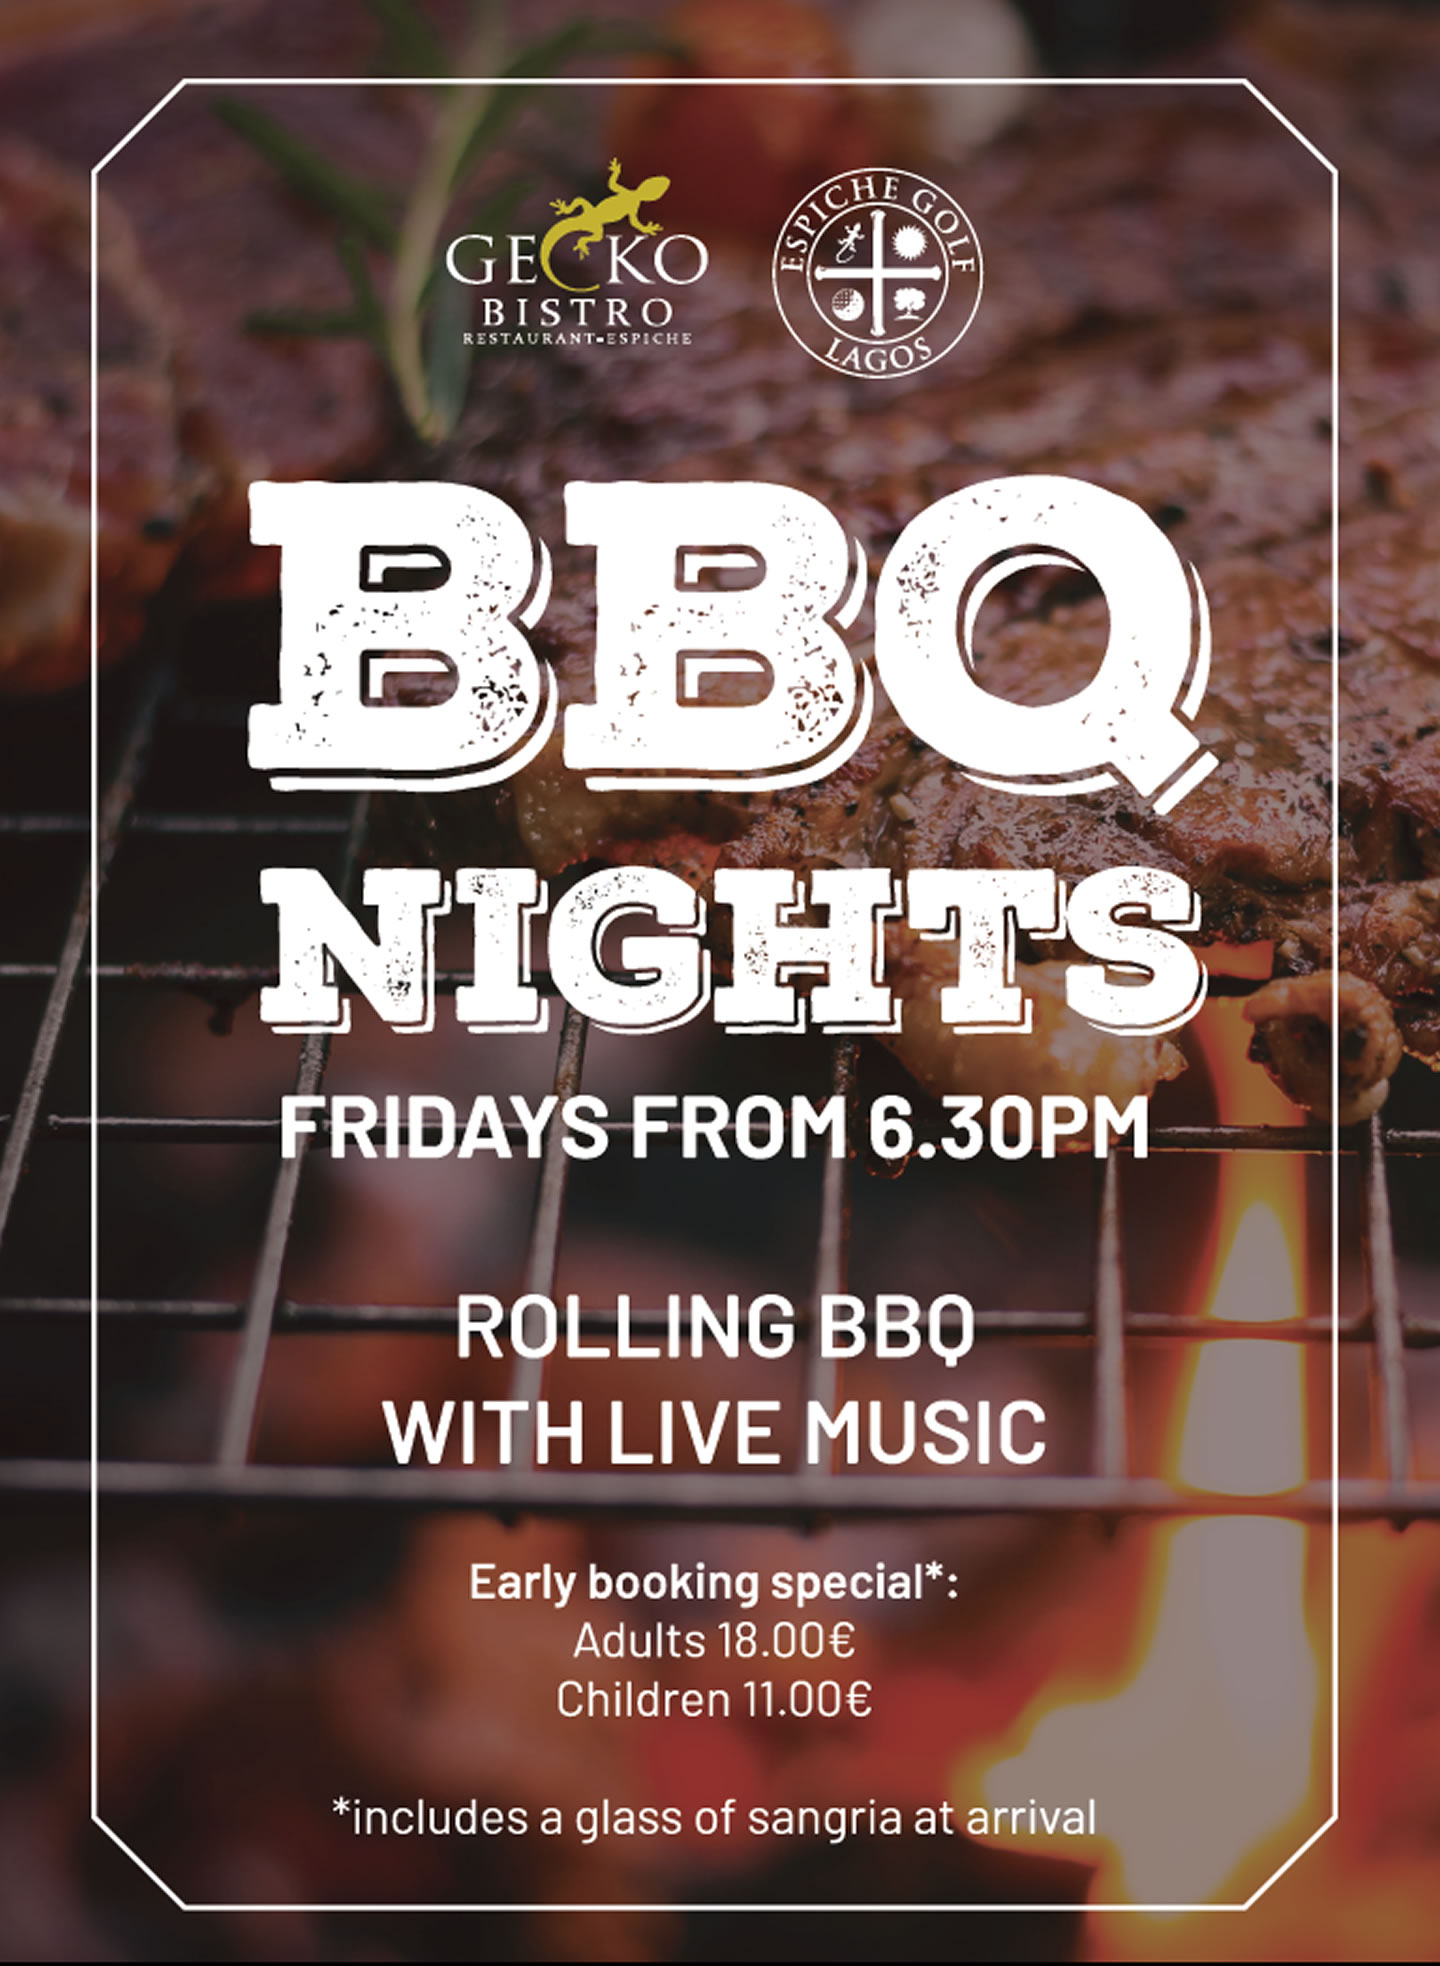 BBQ Nights At Gecko Bistro, Every Friday